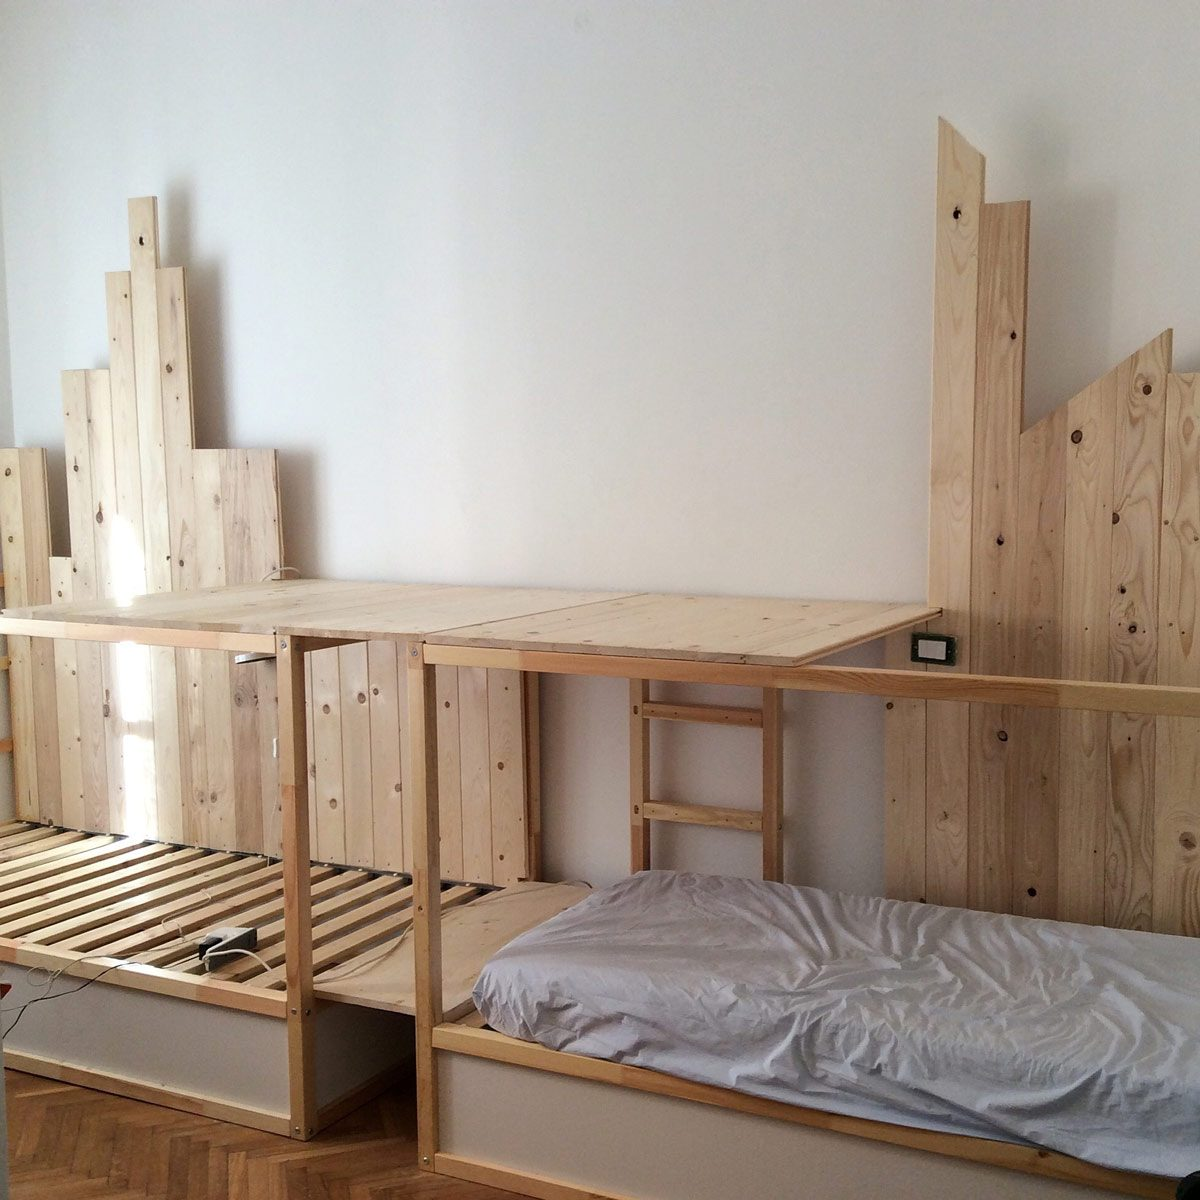 hack ikea furniture. IKEA Bunk Bed Hack Ikea Furniture